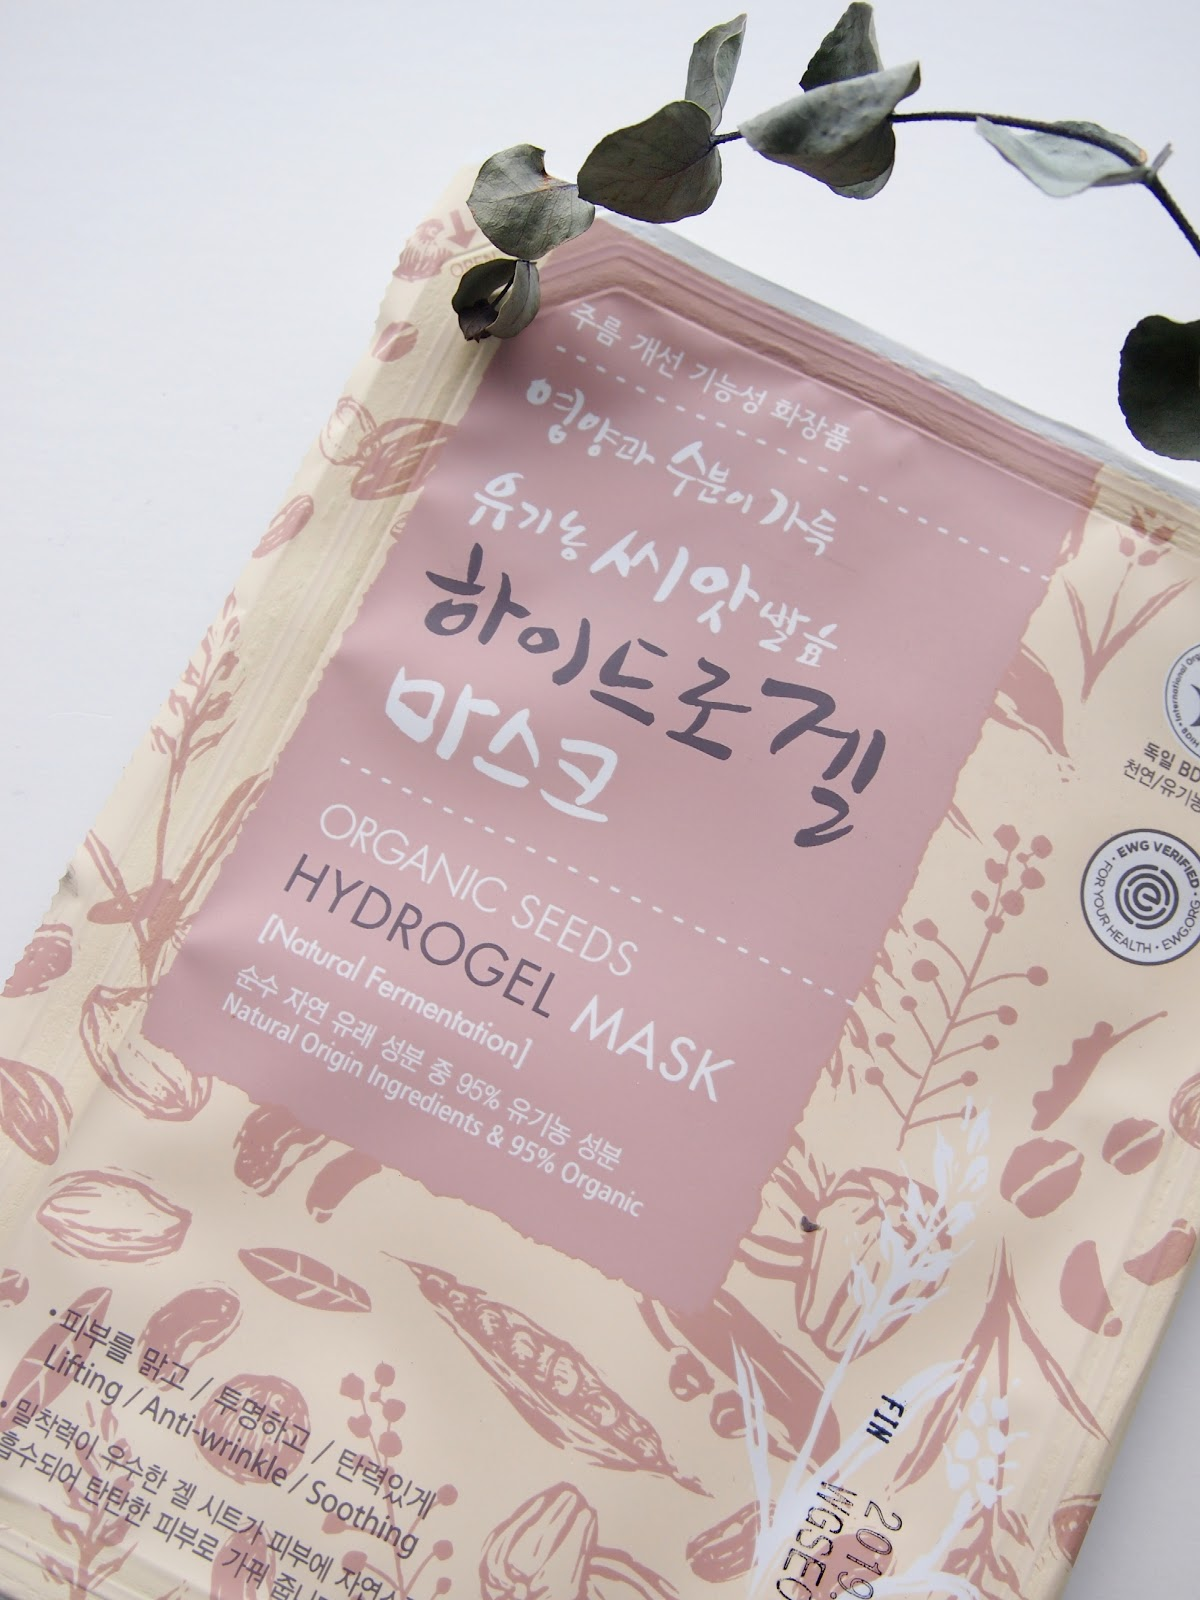 whamisa hydrogel rice seeds mask